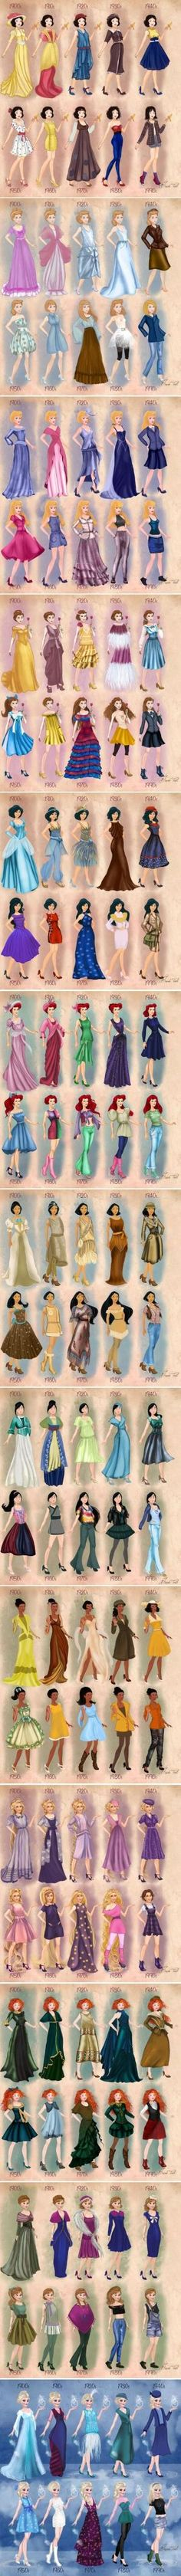 Disney Princesses in 20th Century Fashion. I love this so much. by michele